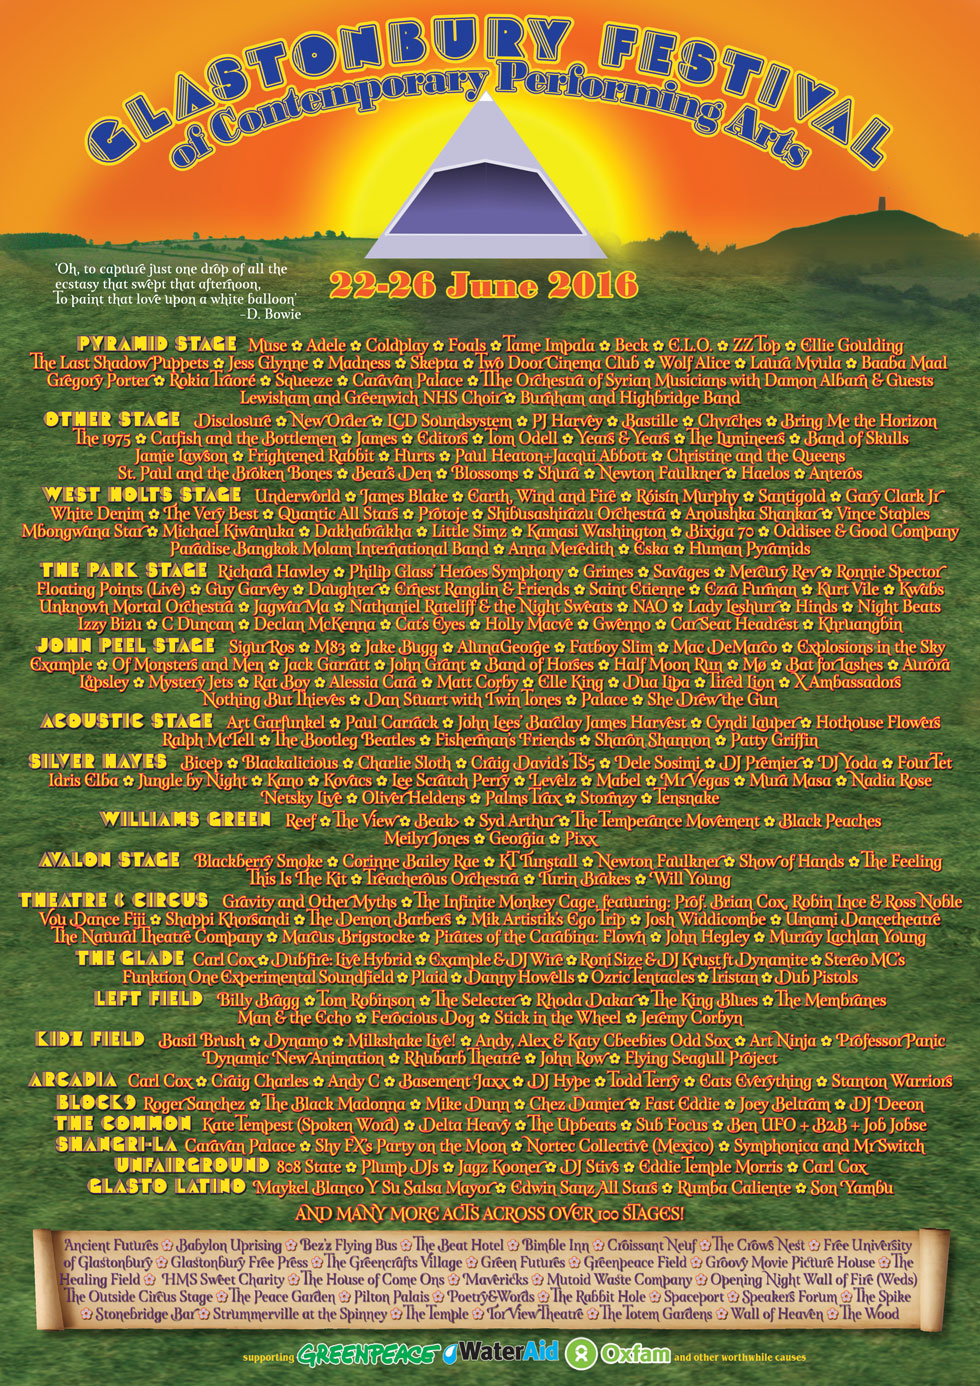 Glastonbury-Festival 2016 - Line-Up-Poster